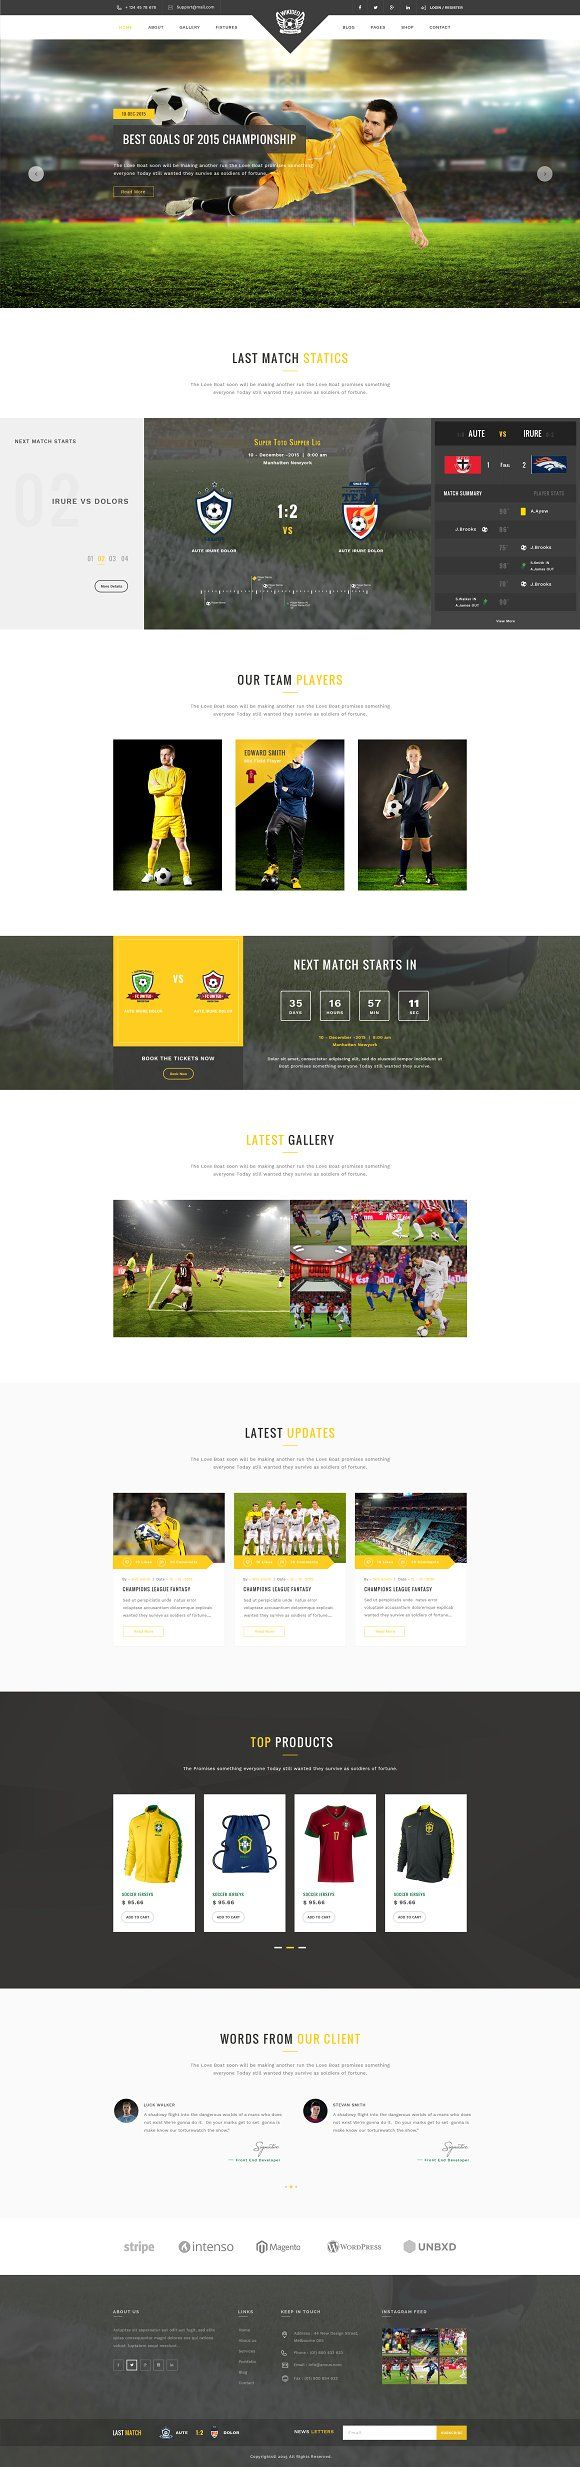 Wikideo - Sports HTML Template by ThemeShop on @creativemarket